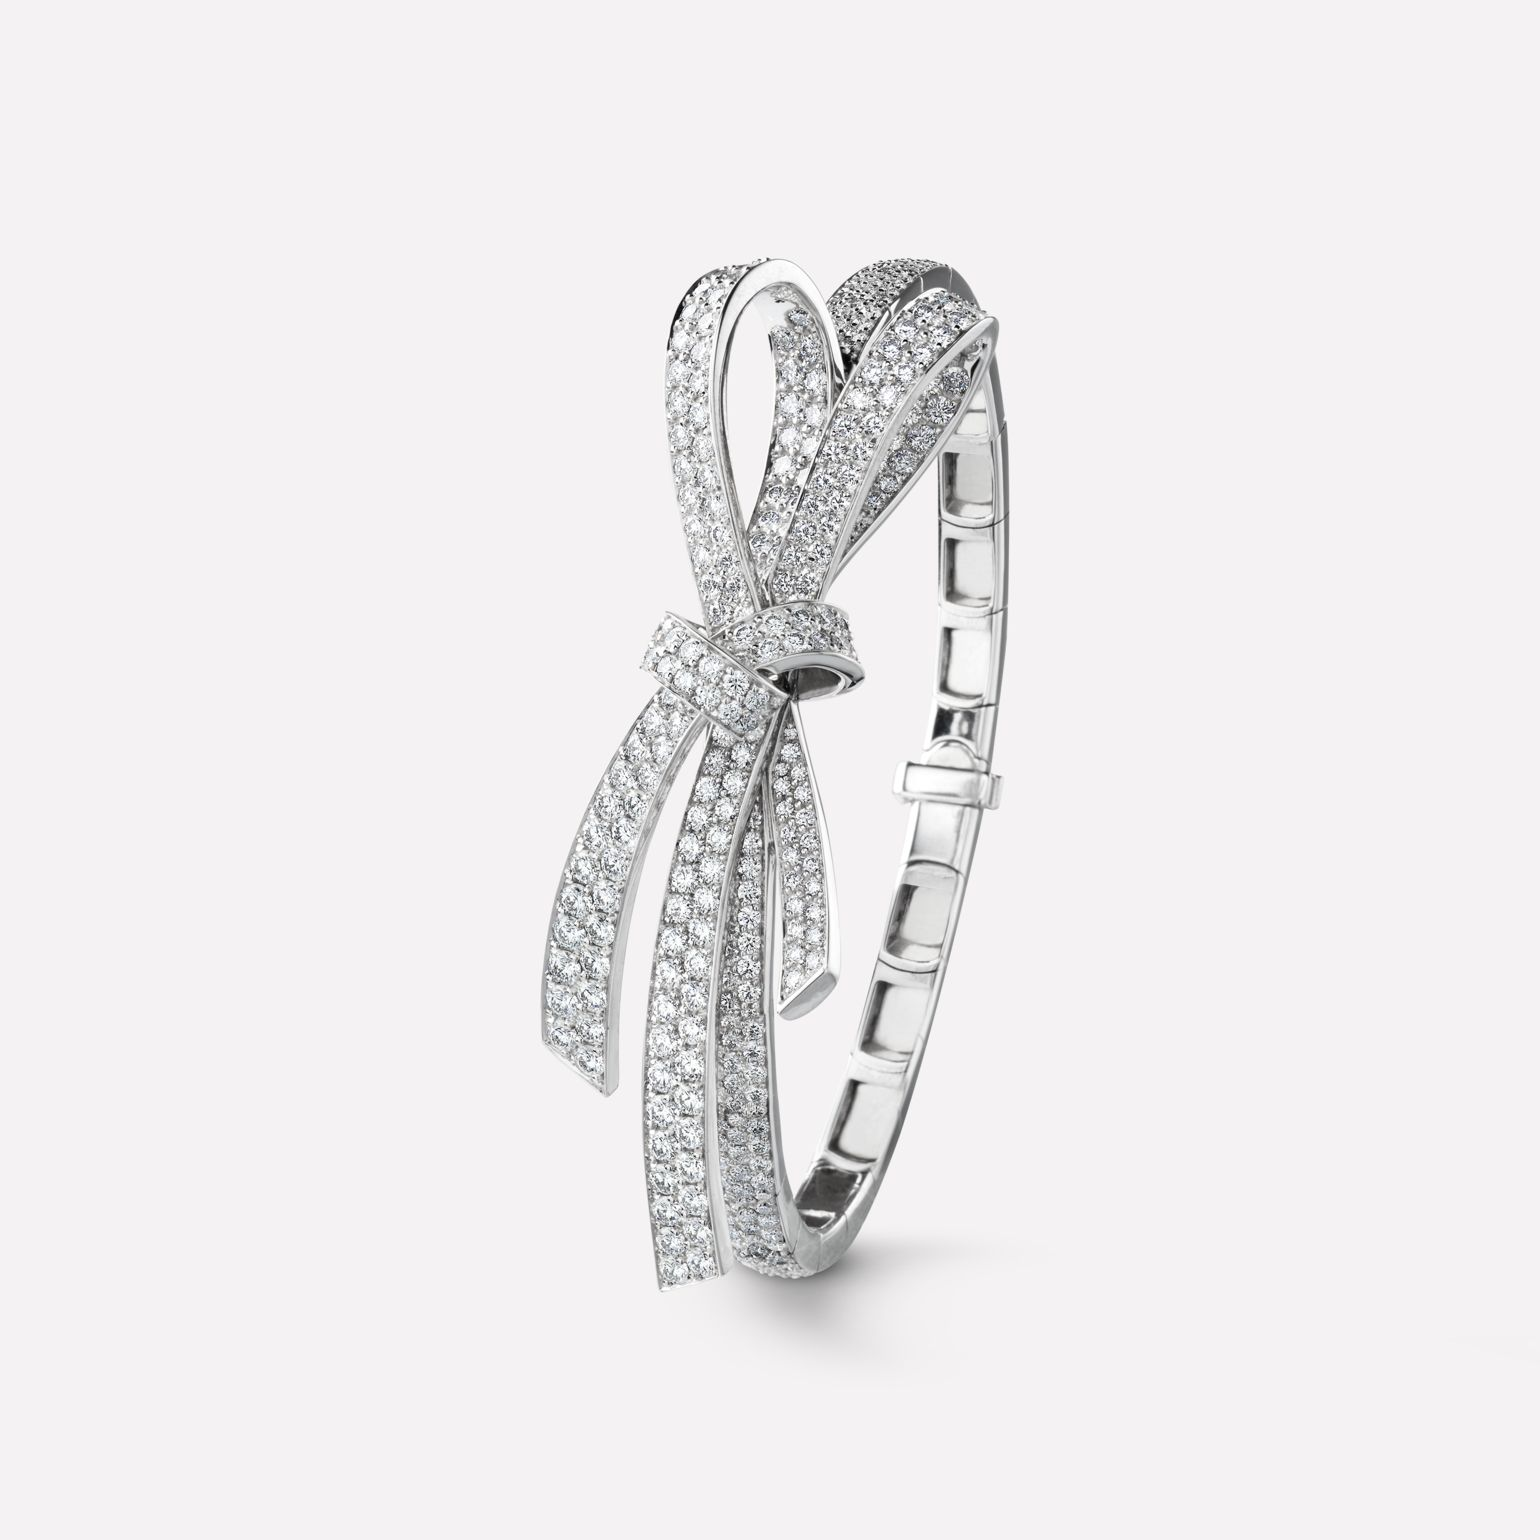 Ruban Bracelet Ruban bracelet in 18K white gold and diamonds